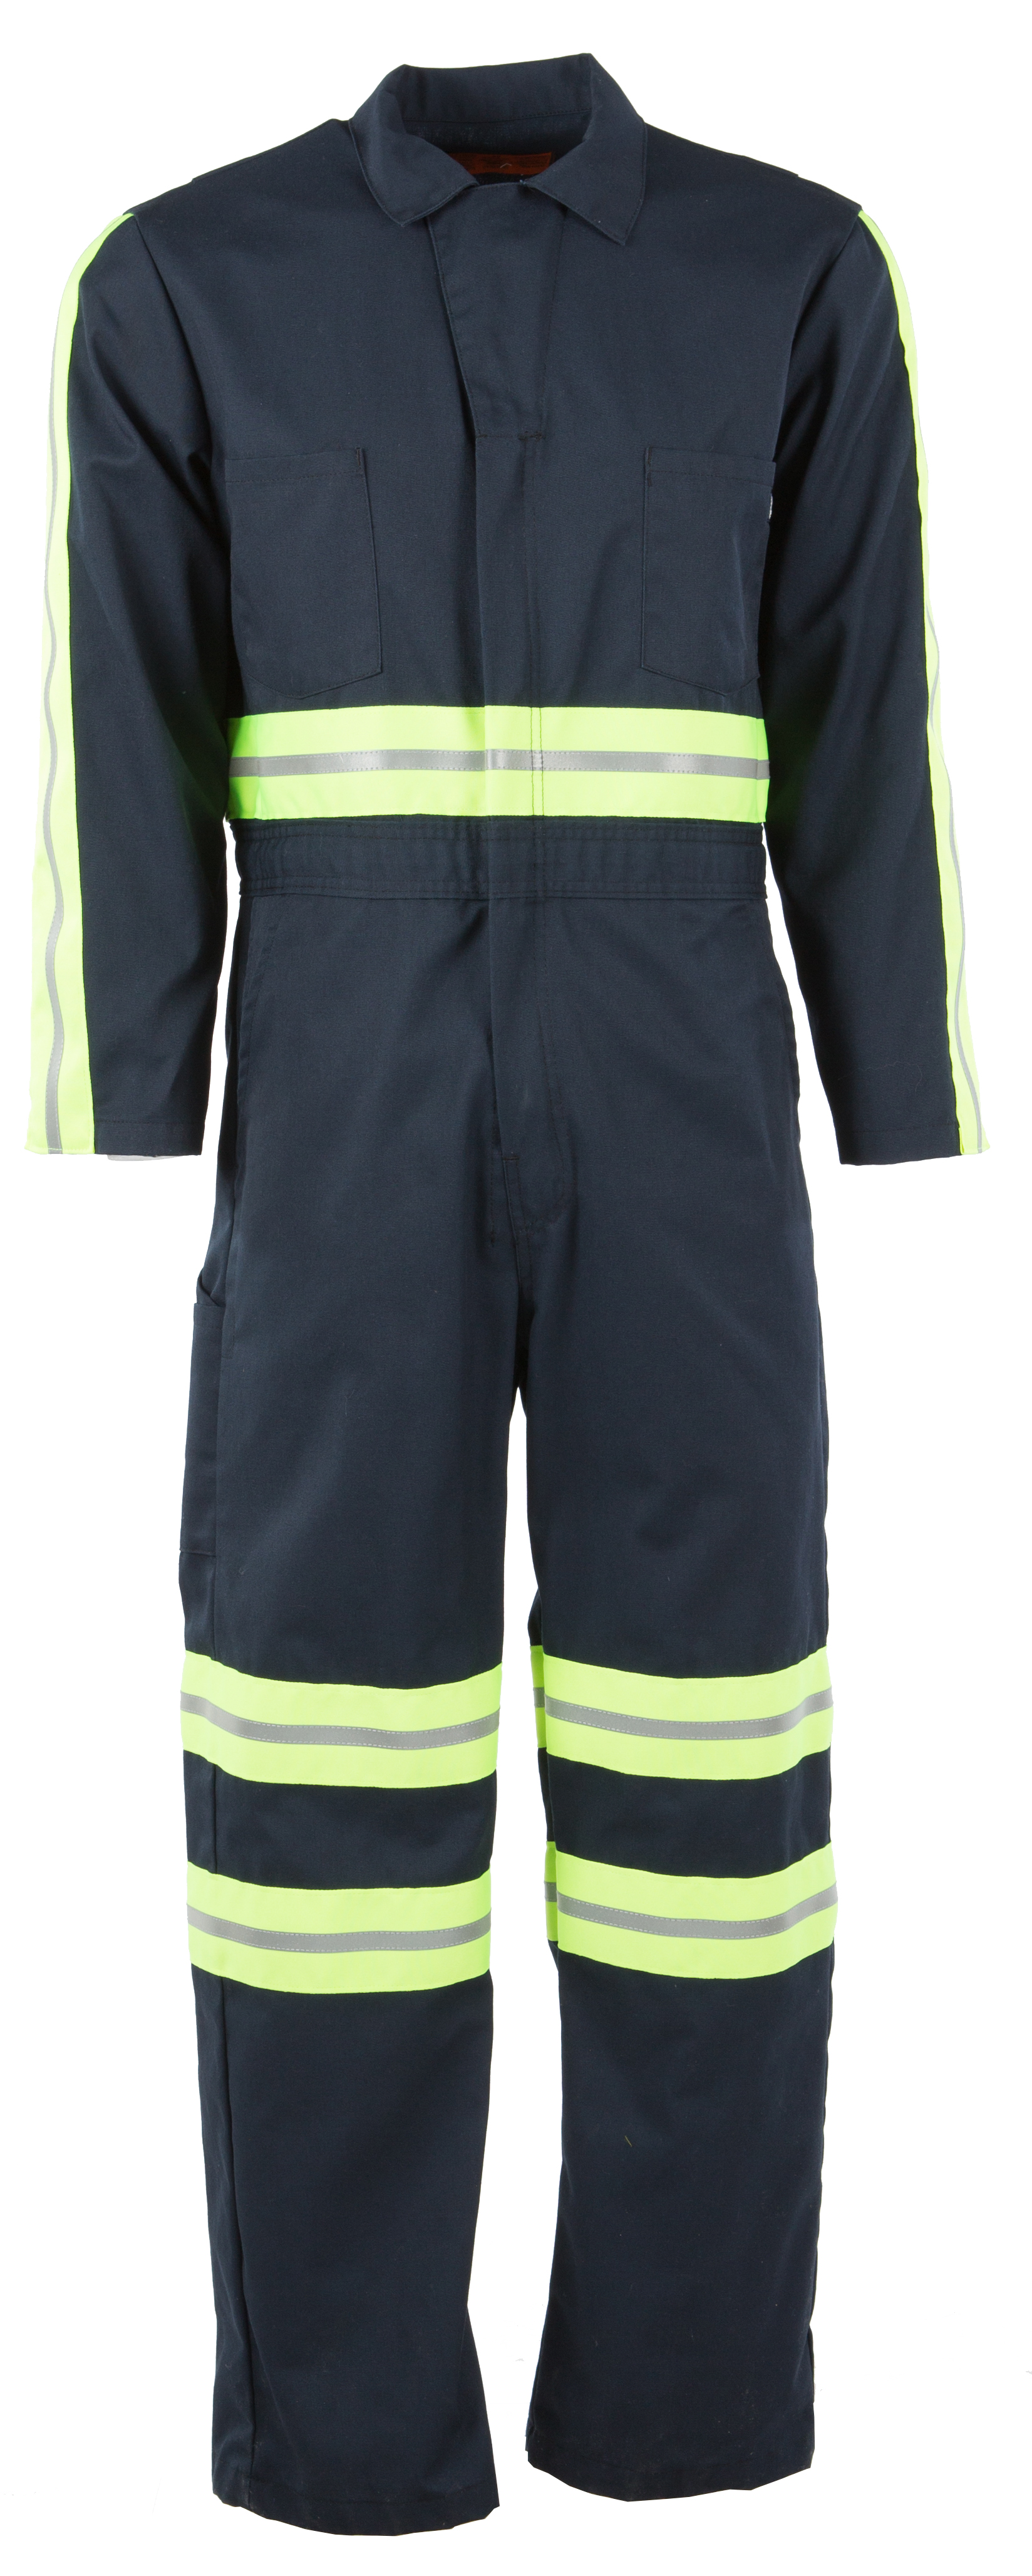 65/35 Enhanced Visibility Coverall-